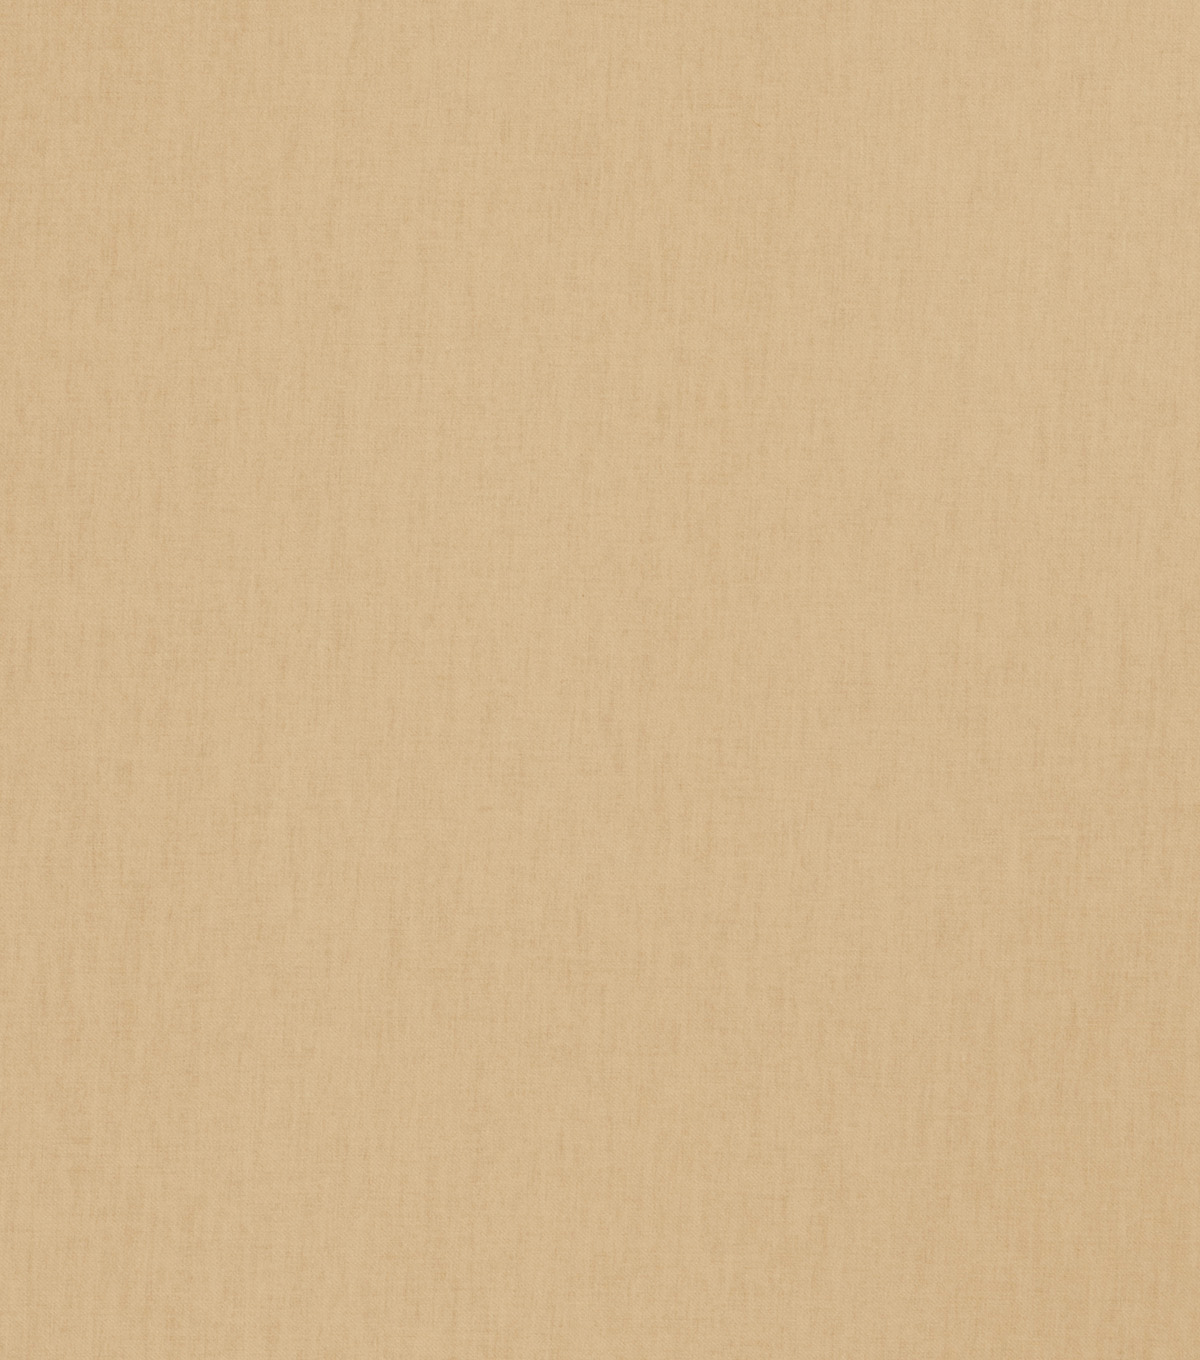 Roc-Lon Fabric Lining Swatch-Marquise Tan